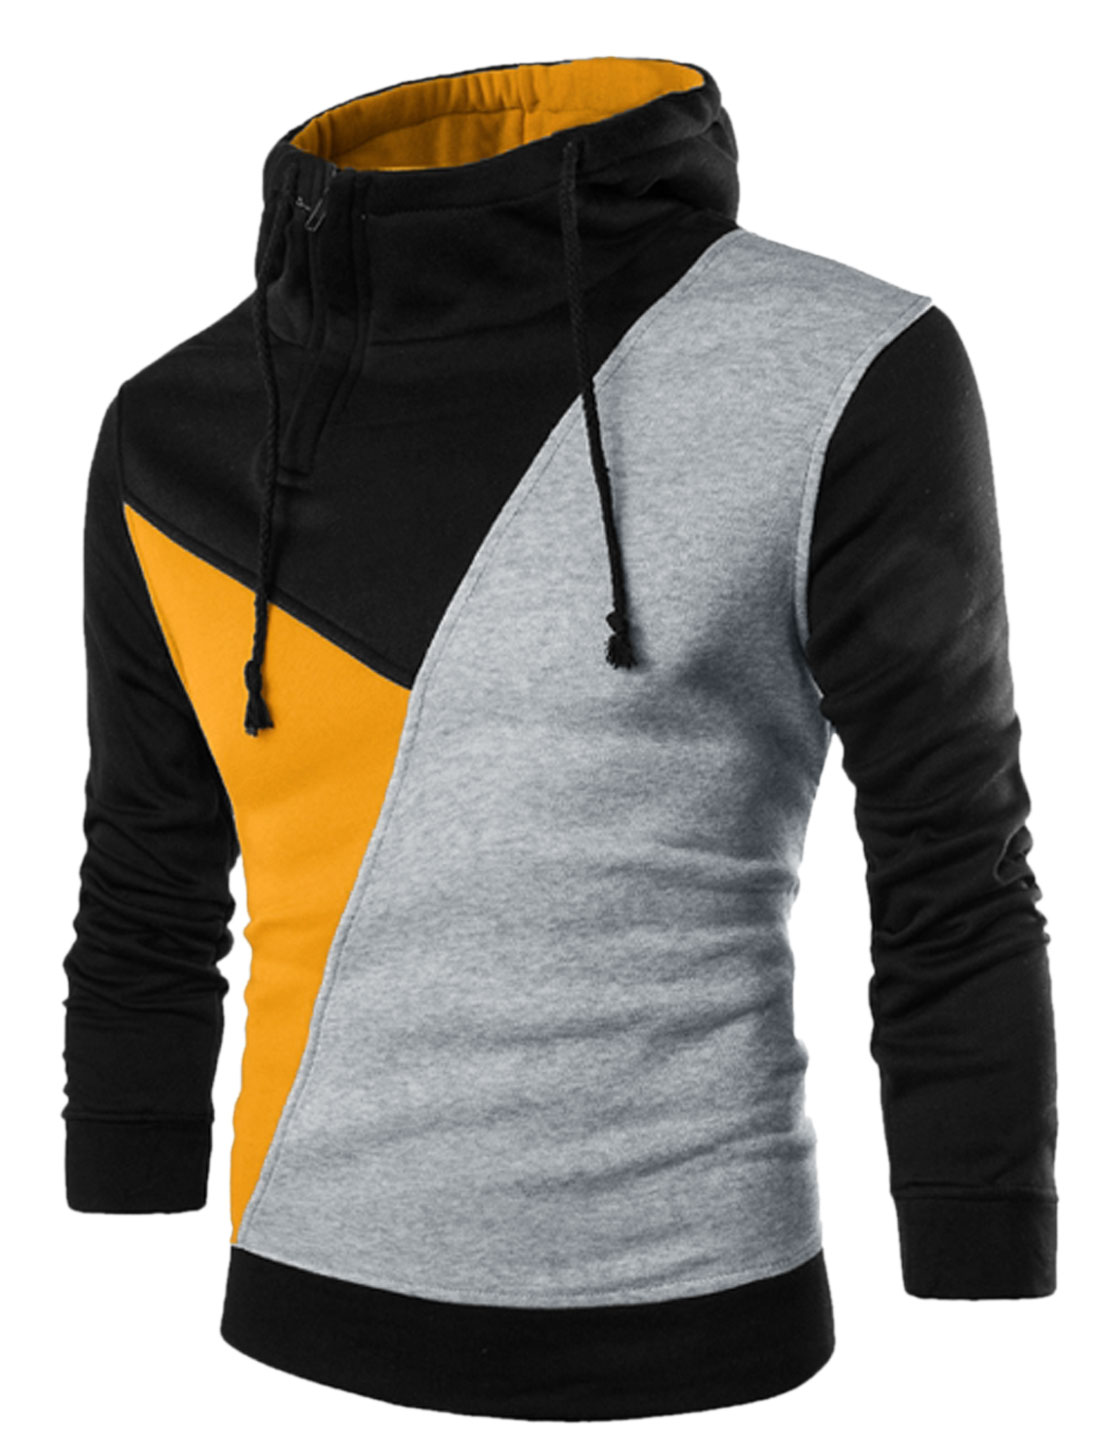 Men Color Block Inclined Zip Upper Soft Lined Drawstring Hoodie Yellow Light Gray M